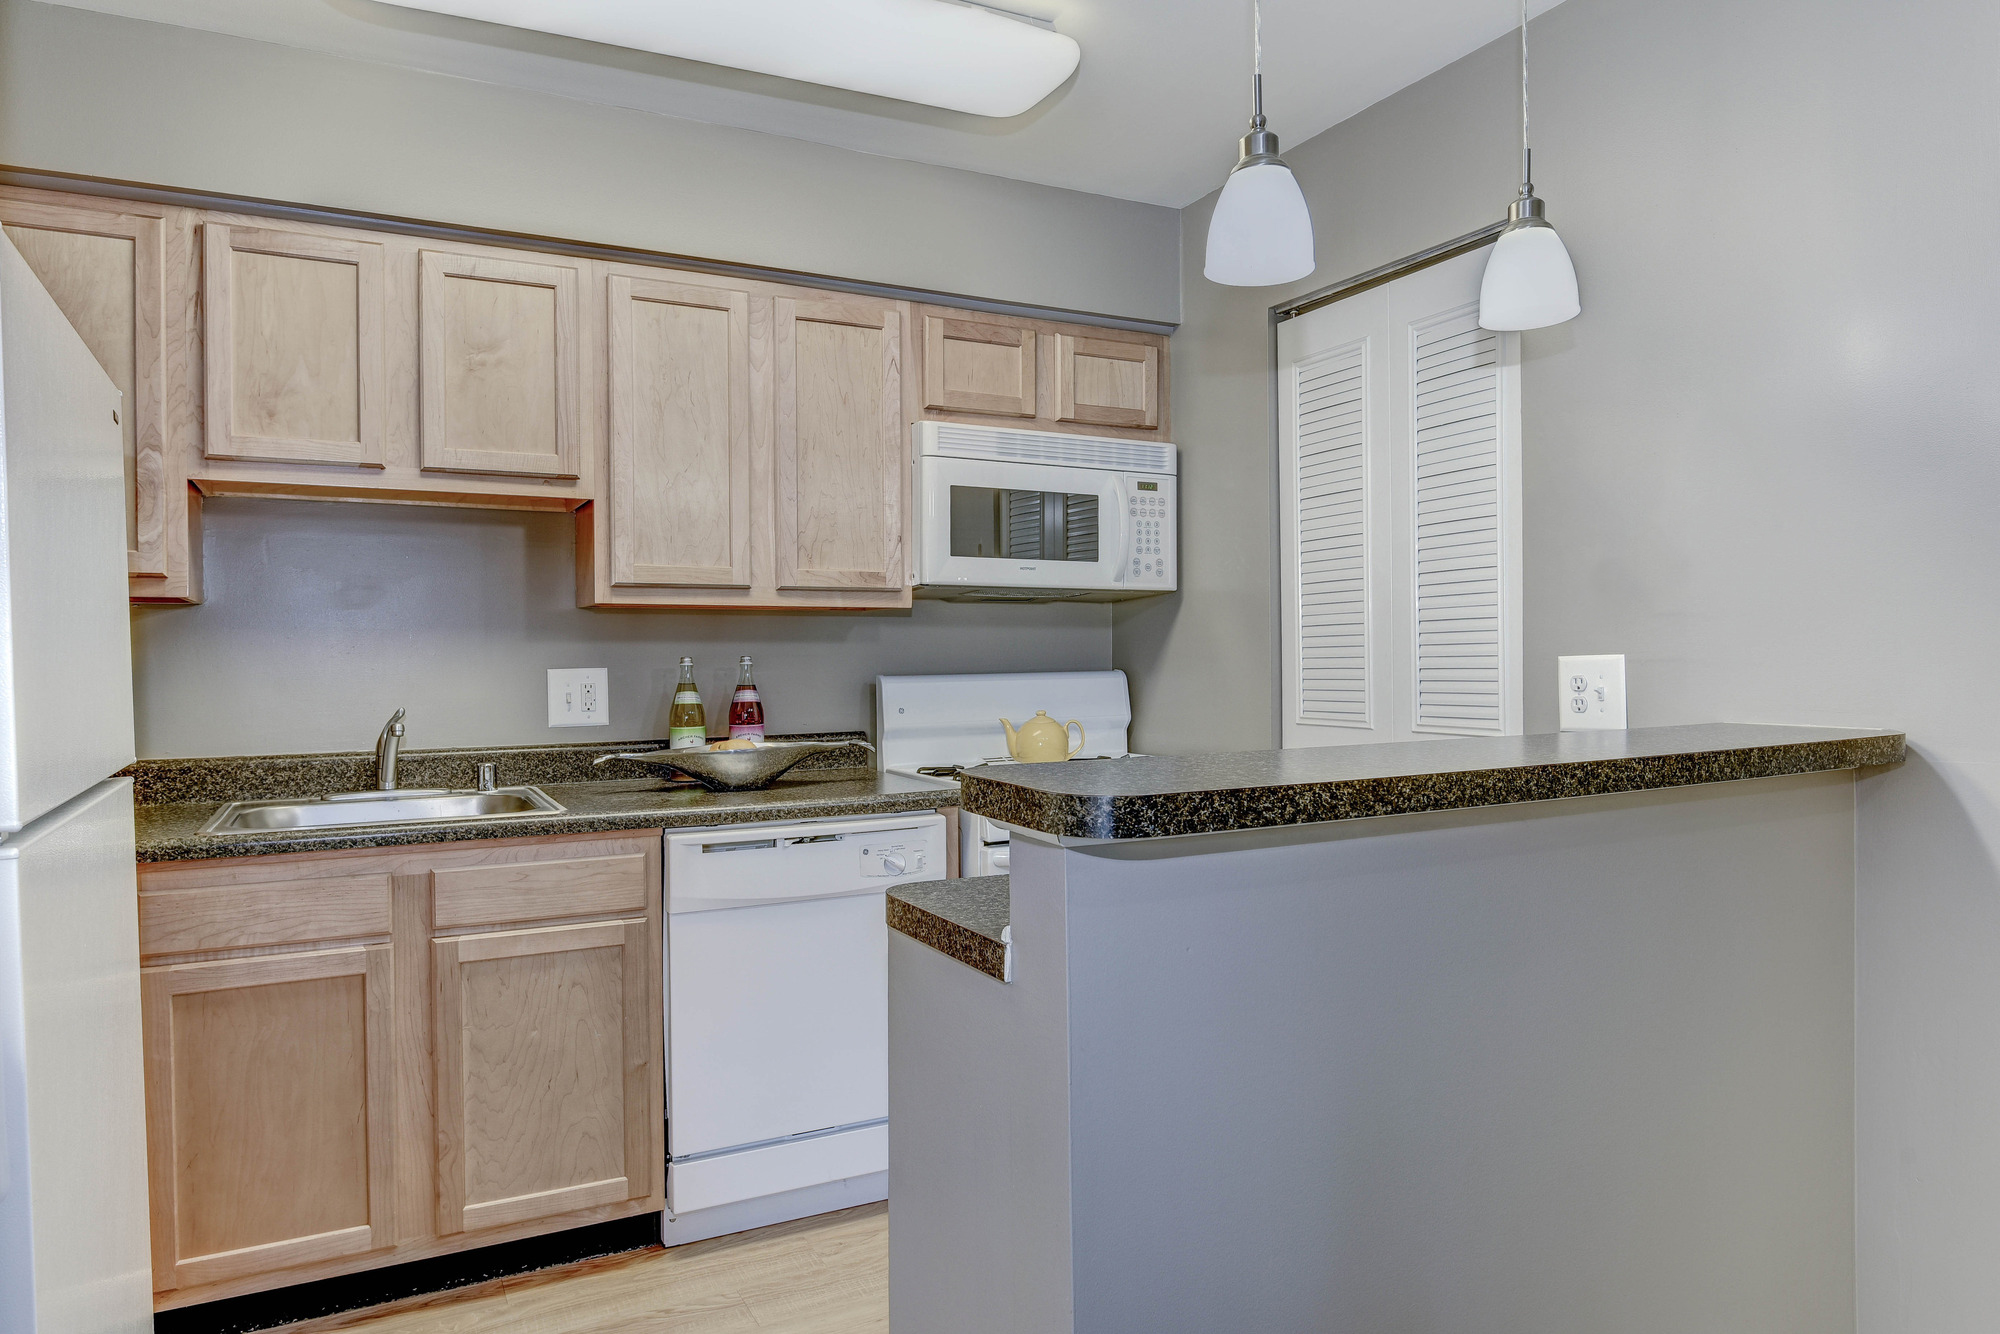 Hampton Manor Apartments & Townhomes in Cockeysville, MD - Apartment Kitchen